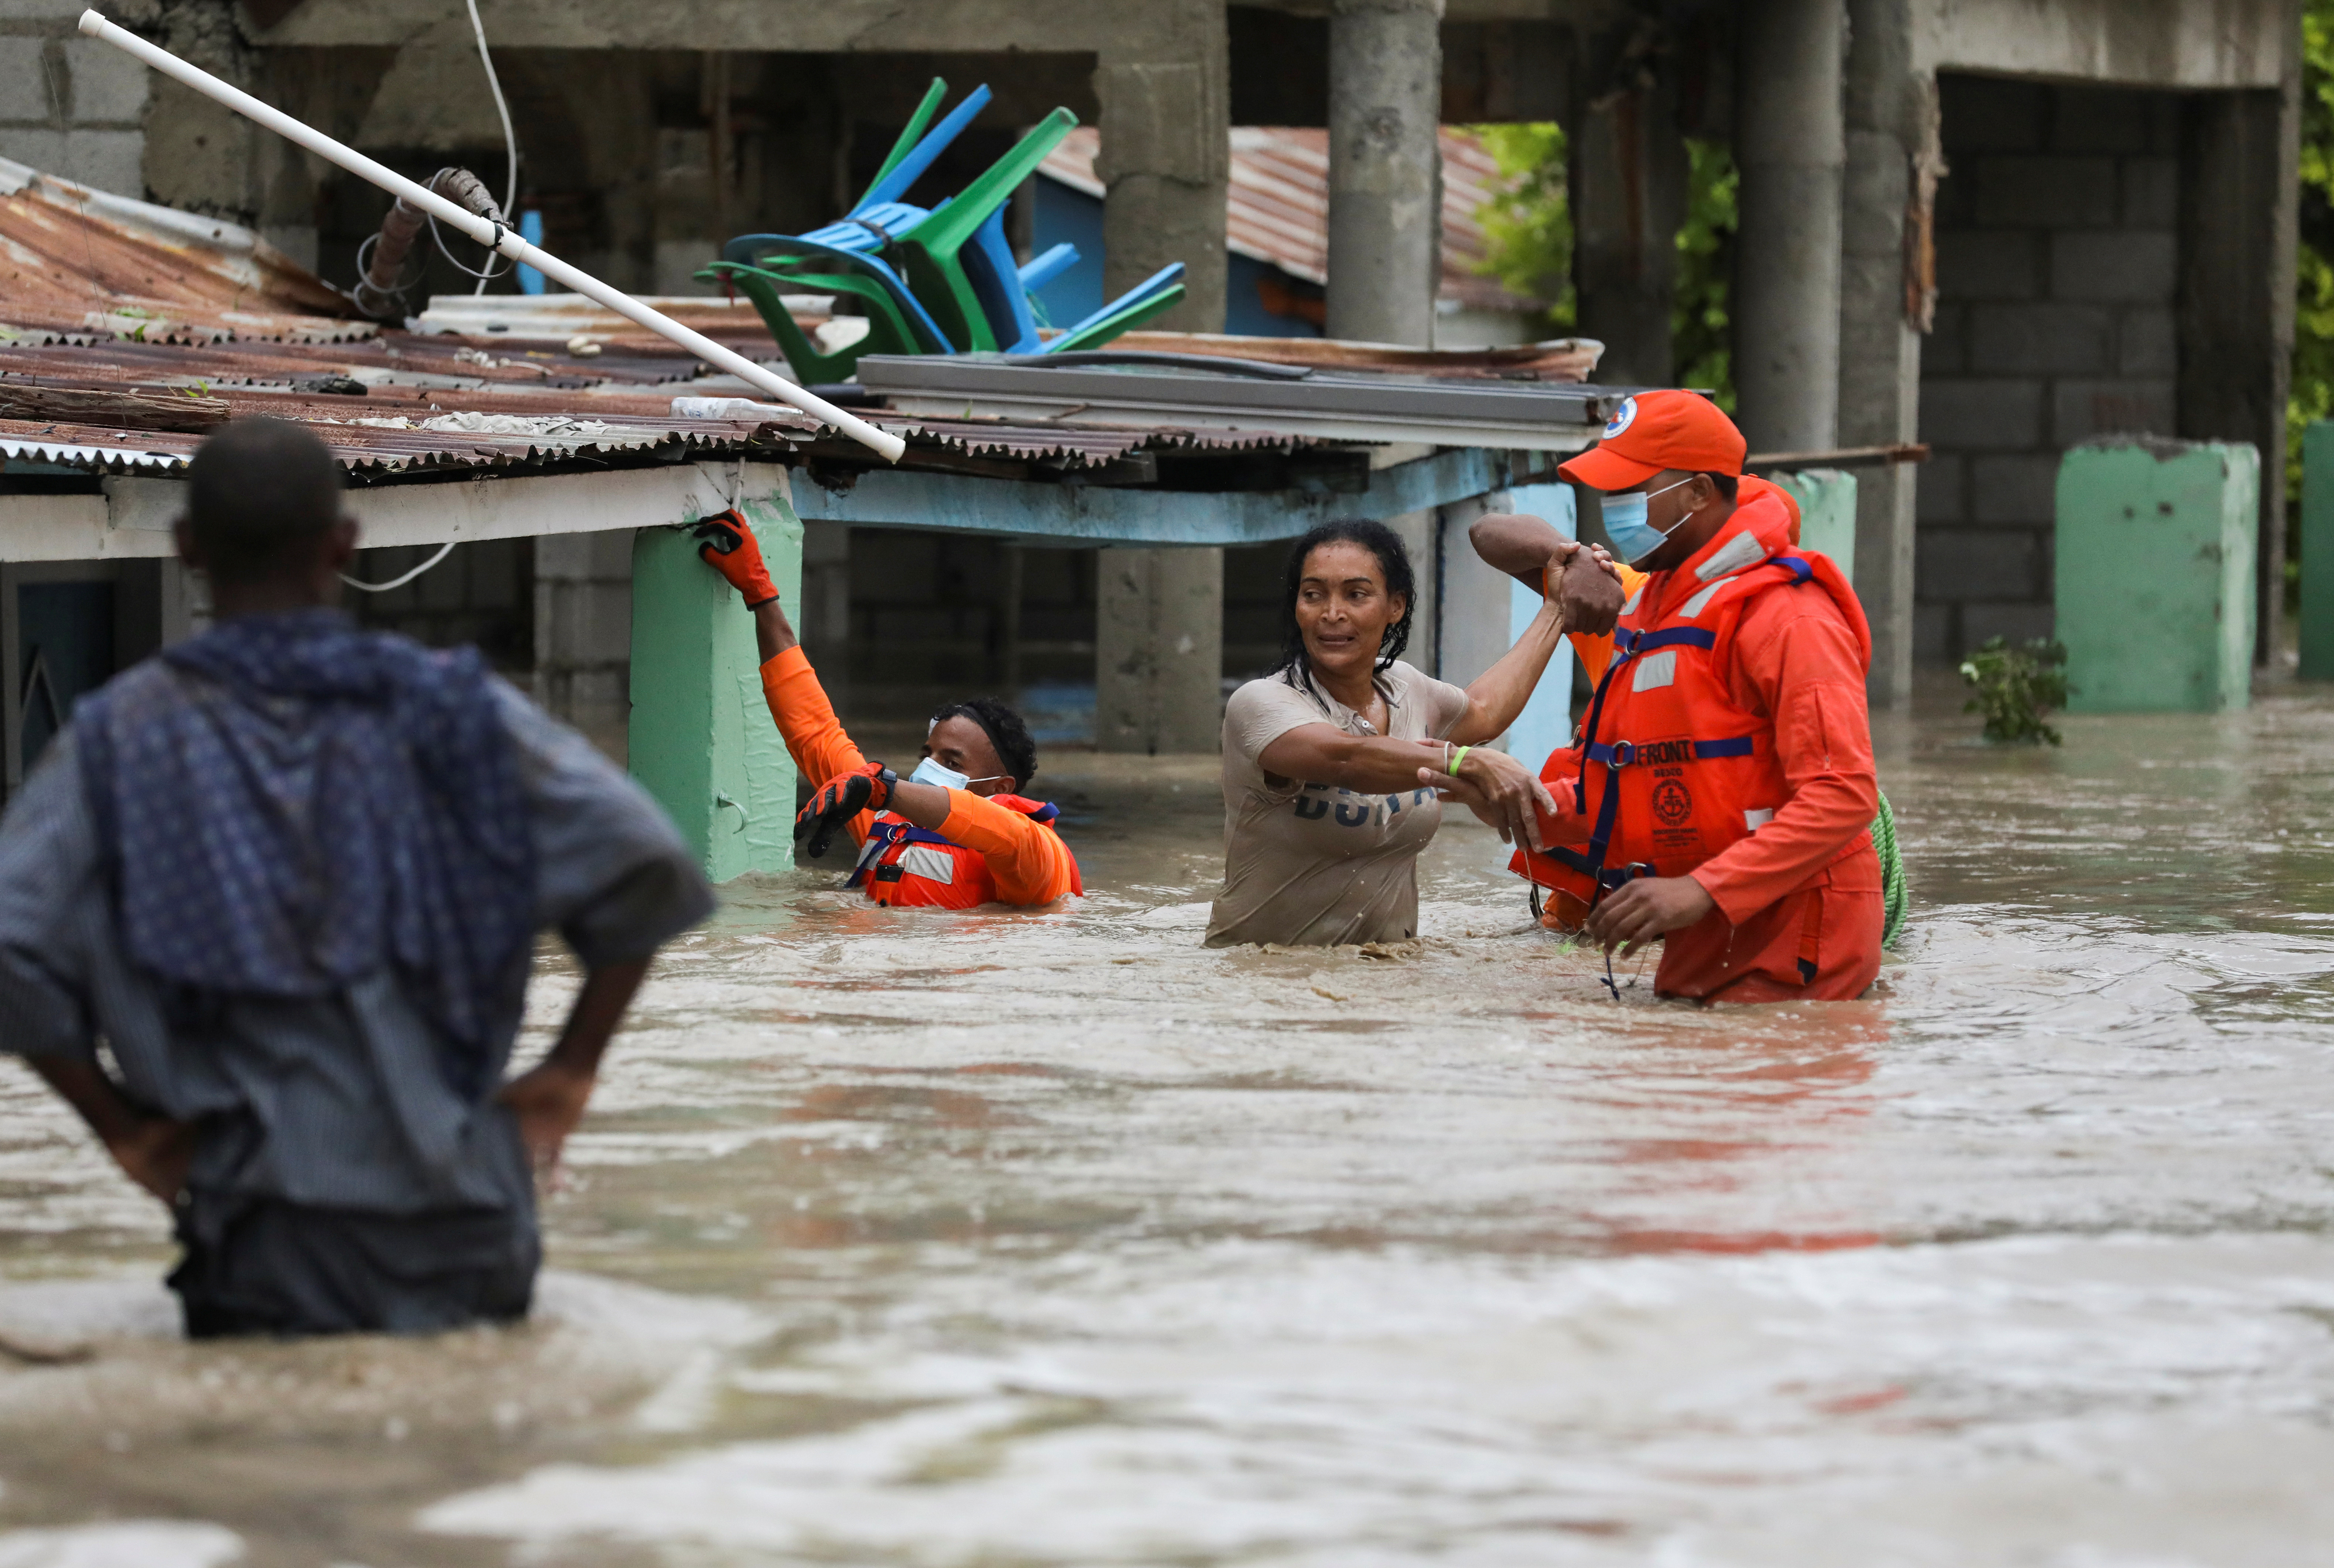 Members of the Civil Defence help a woman in a flooded street after the passage of Storm Laura, in Azua, Dominican Republic August 23, 2020. REUTERS/Ricardo Rojas - RC21KI9M1R9X